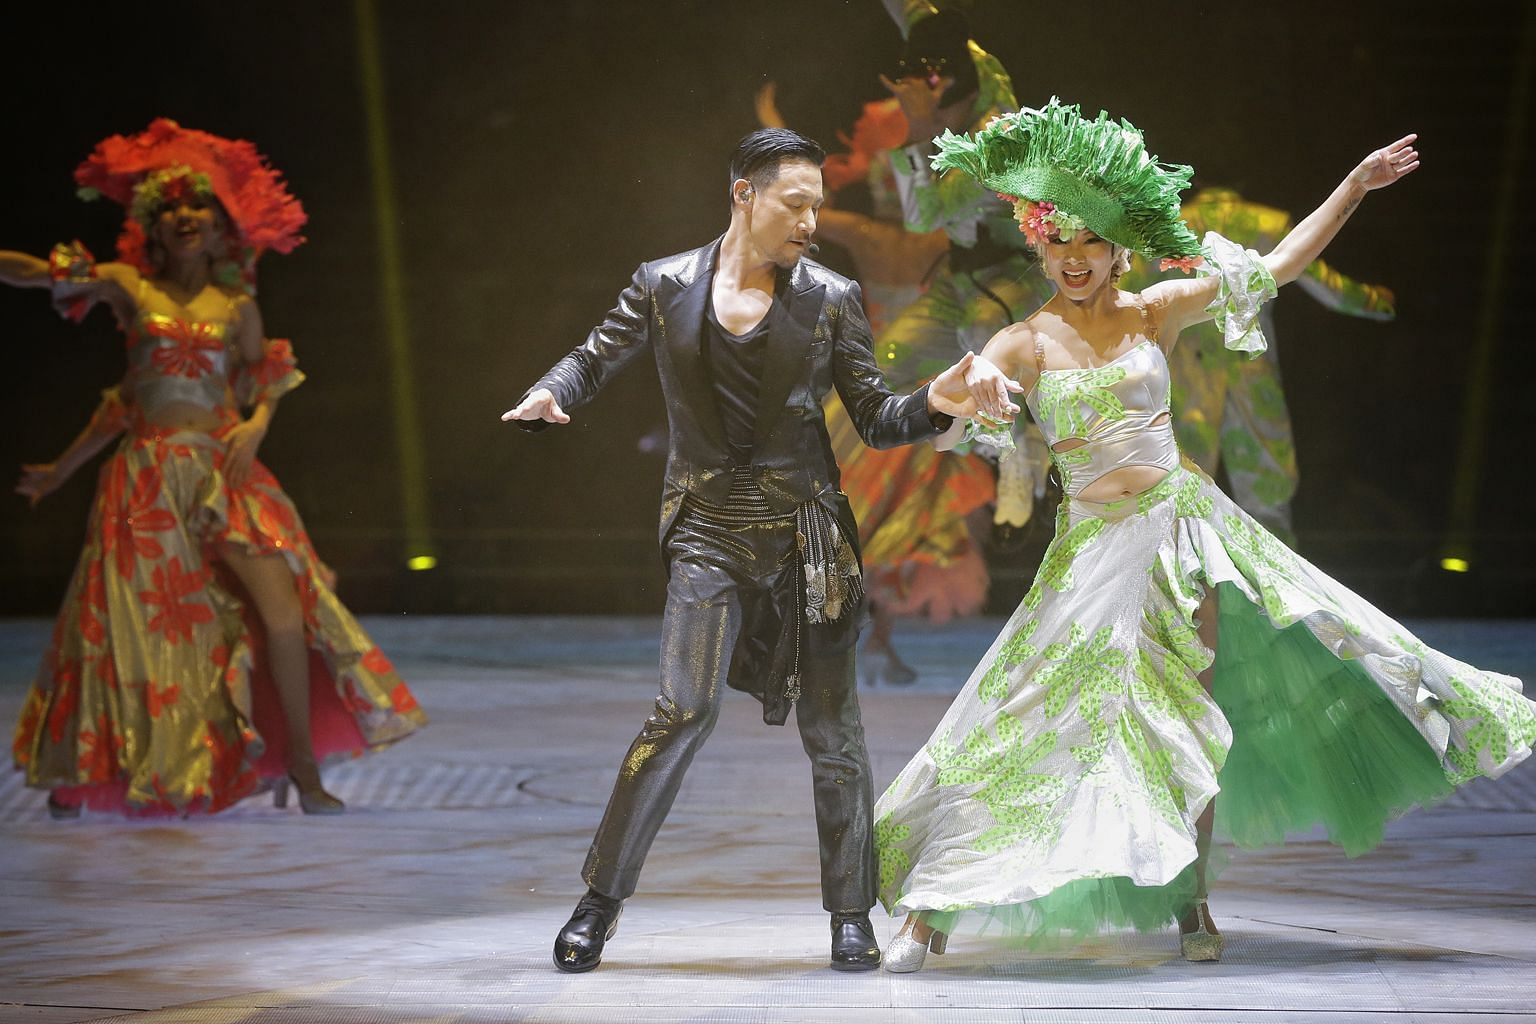 Singer Jacky Cheung displayed a brisk pace and high energy throughout his concert.